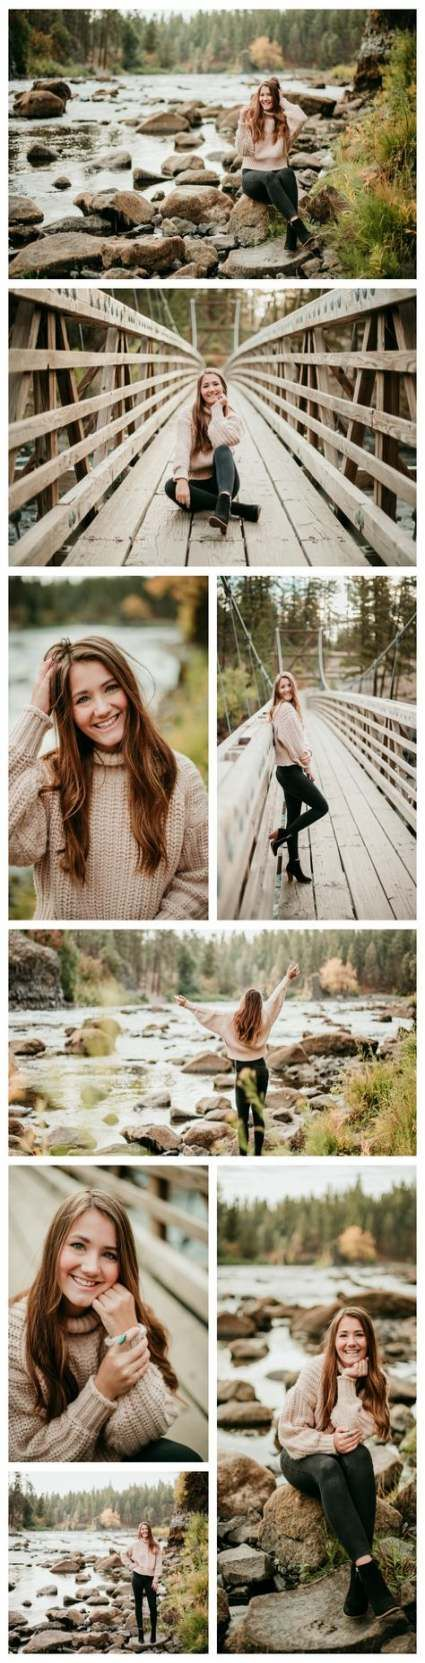 Photography Autumn Ideas Senior Pics 16 Ideas #photography